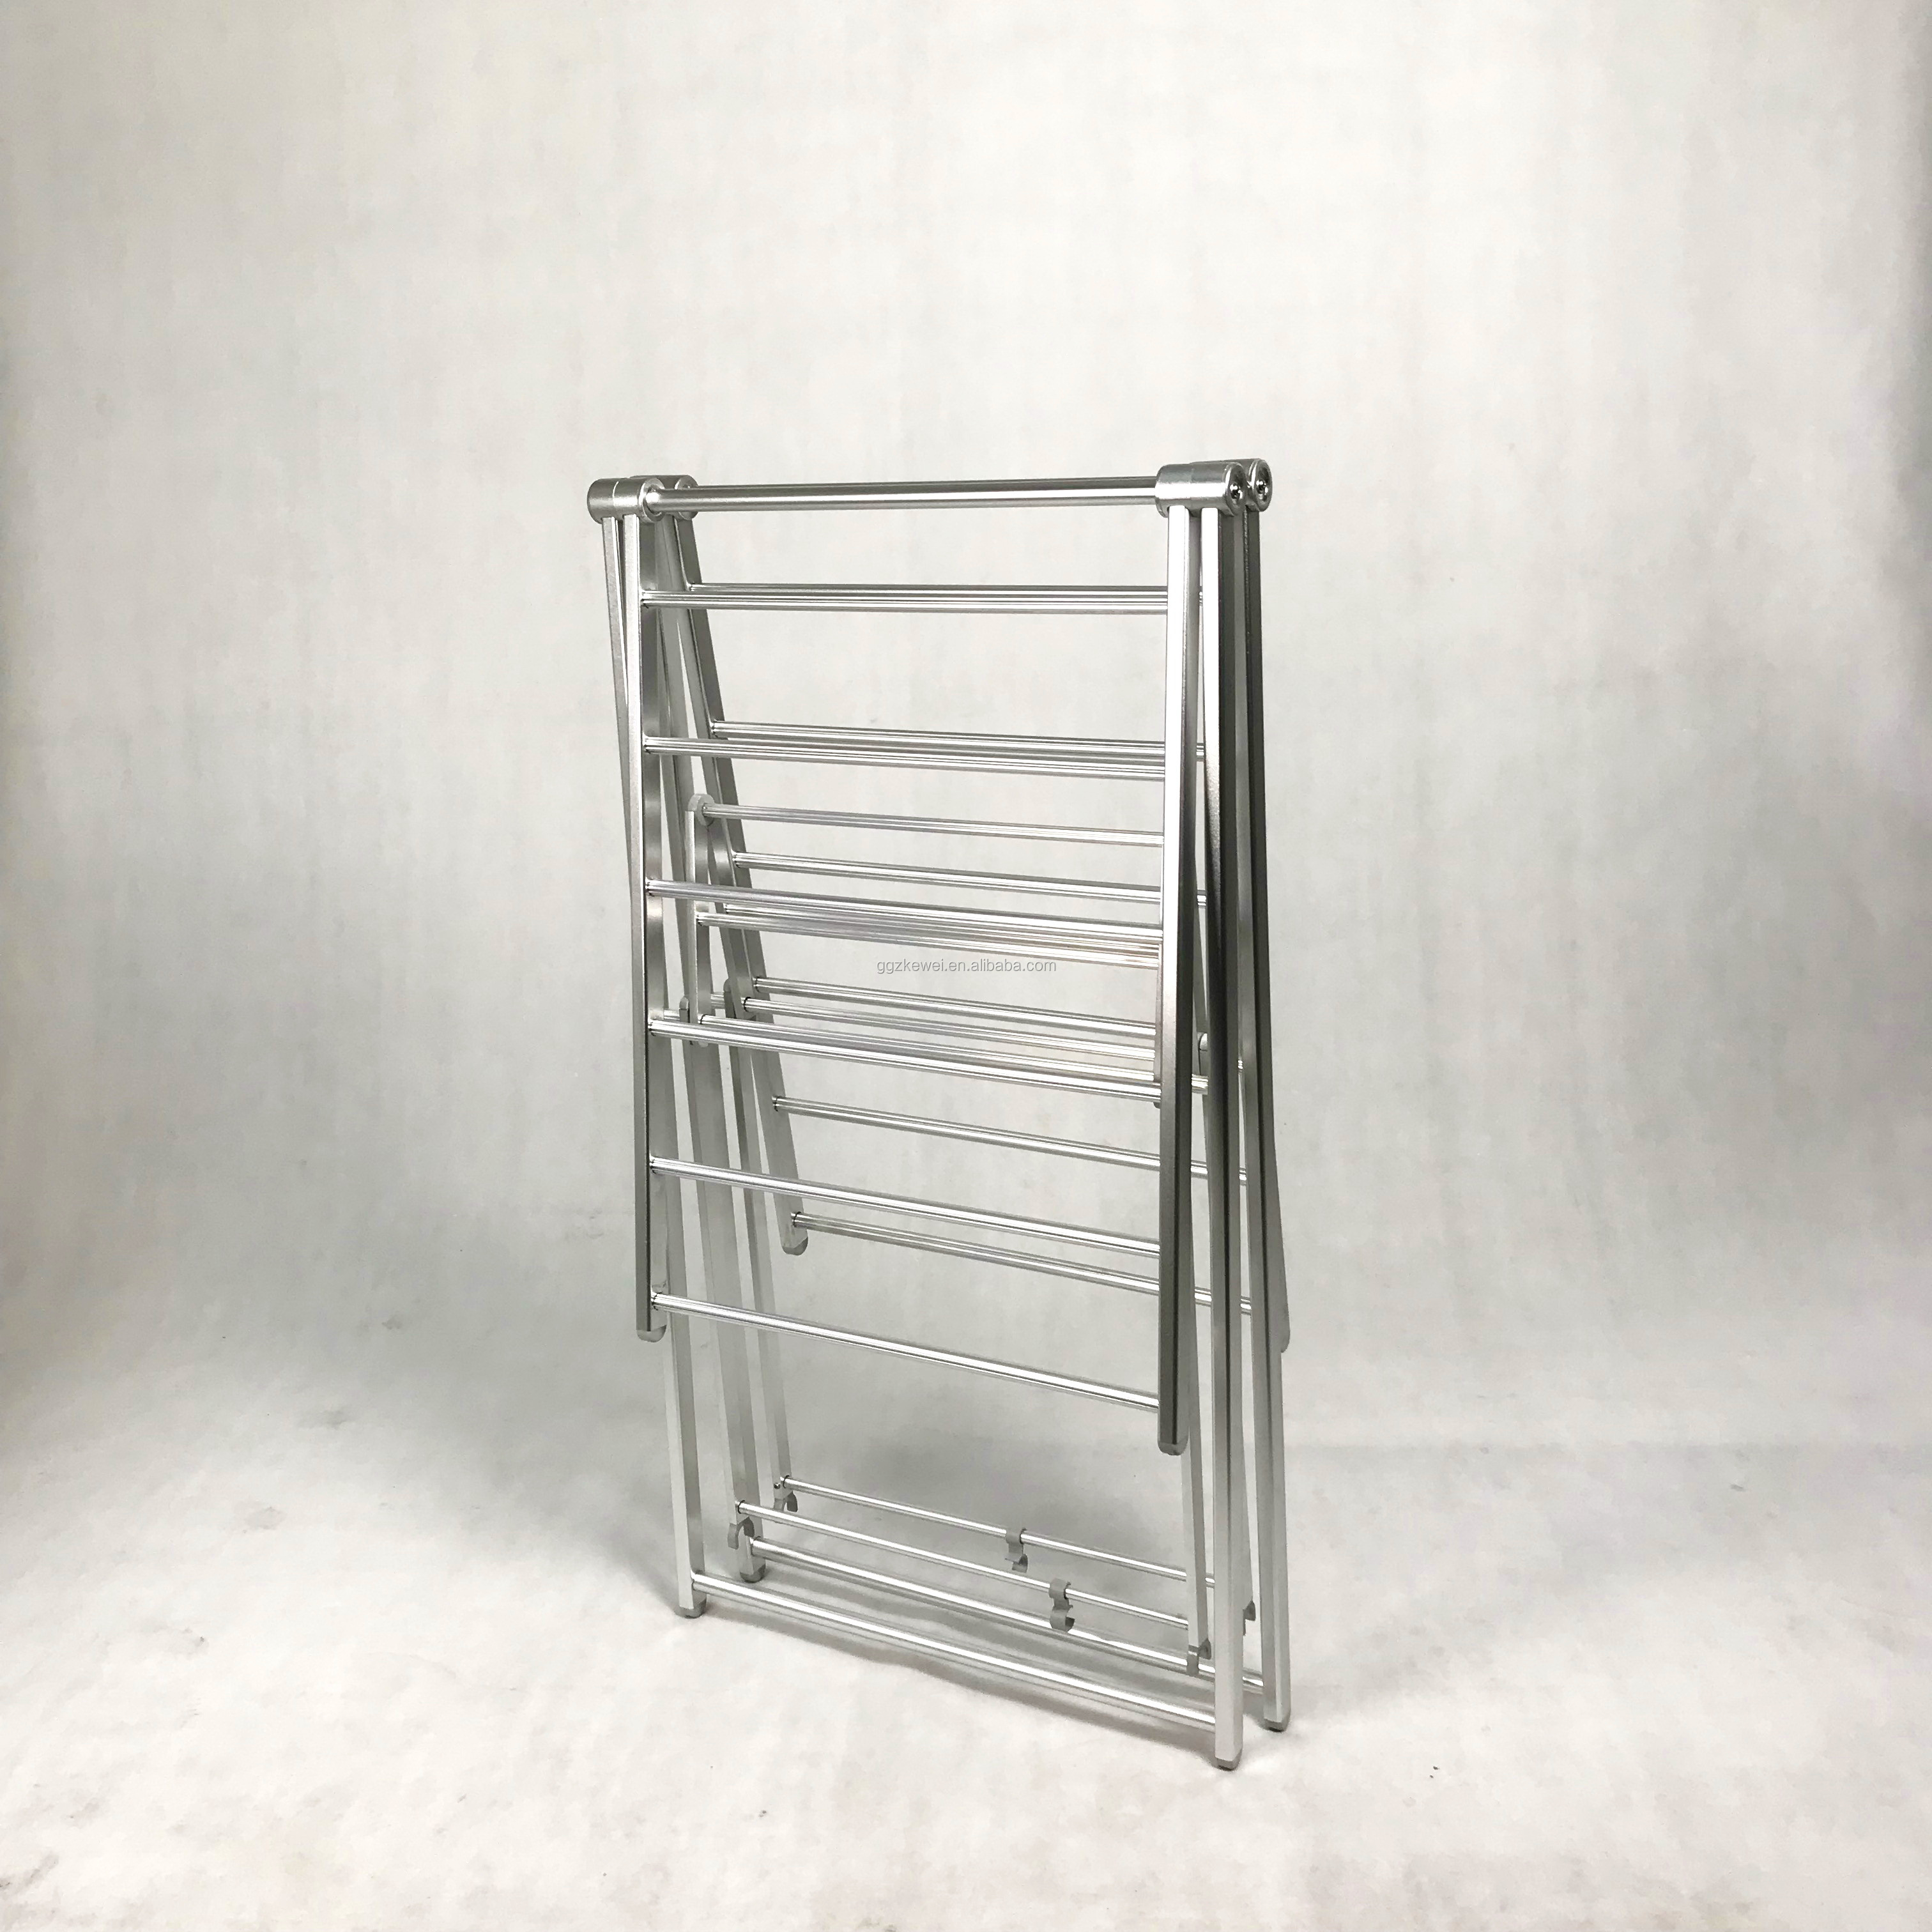 Aluminum Folding Clothes drying racks wholesale from manufacture , silver color with thread bars